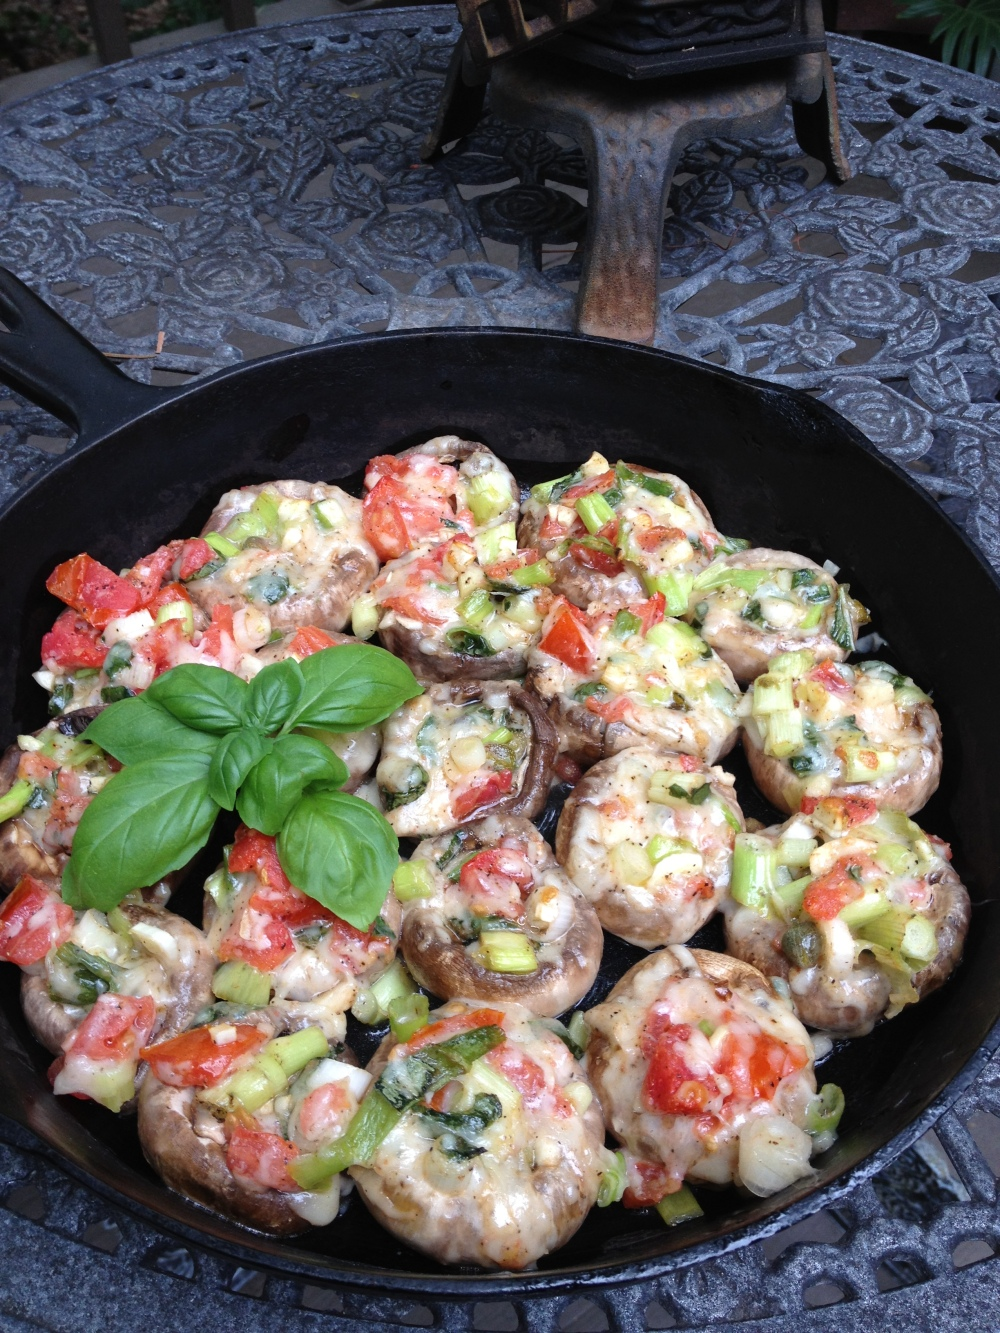 Skillet w stuffed mushrooms outdoor